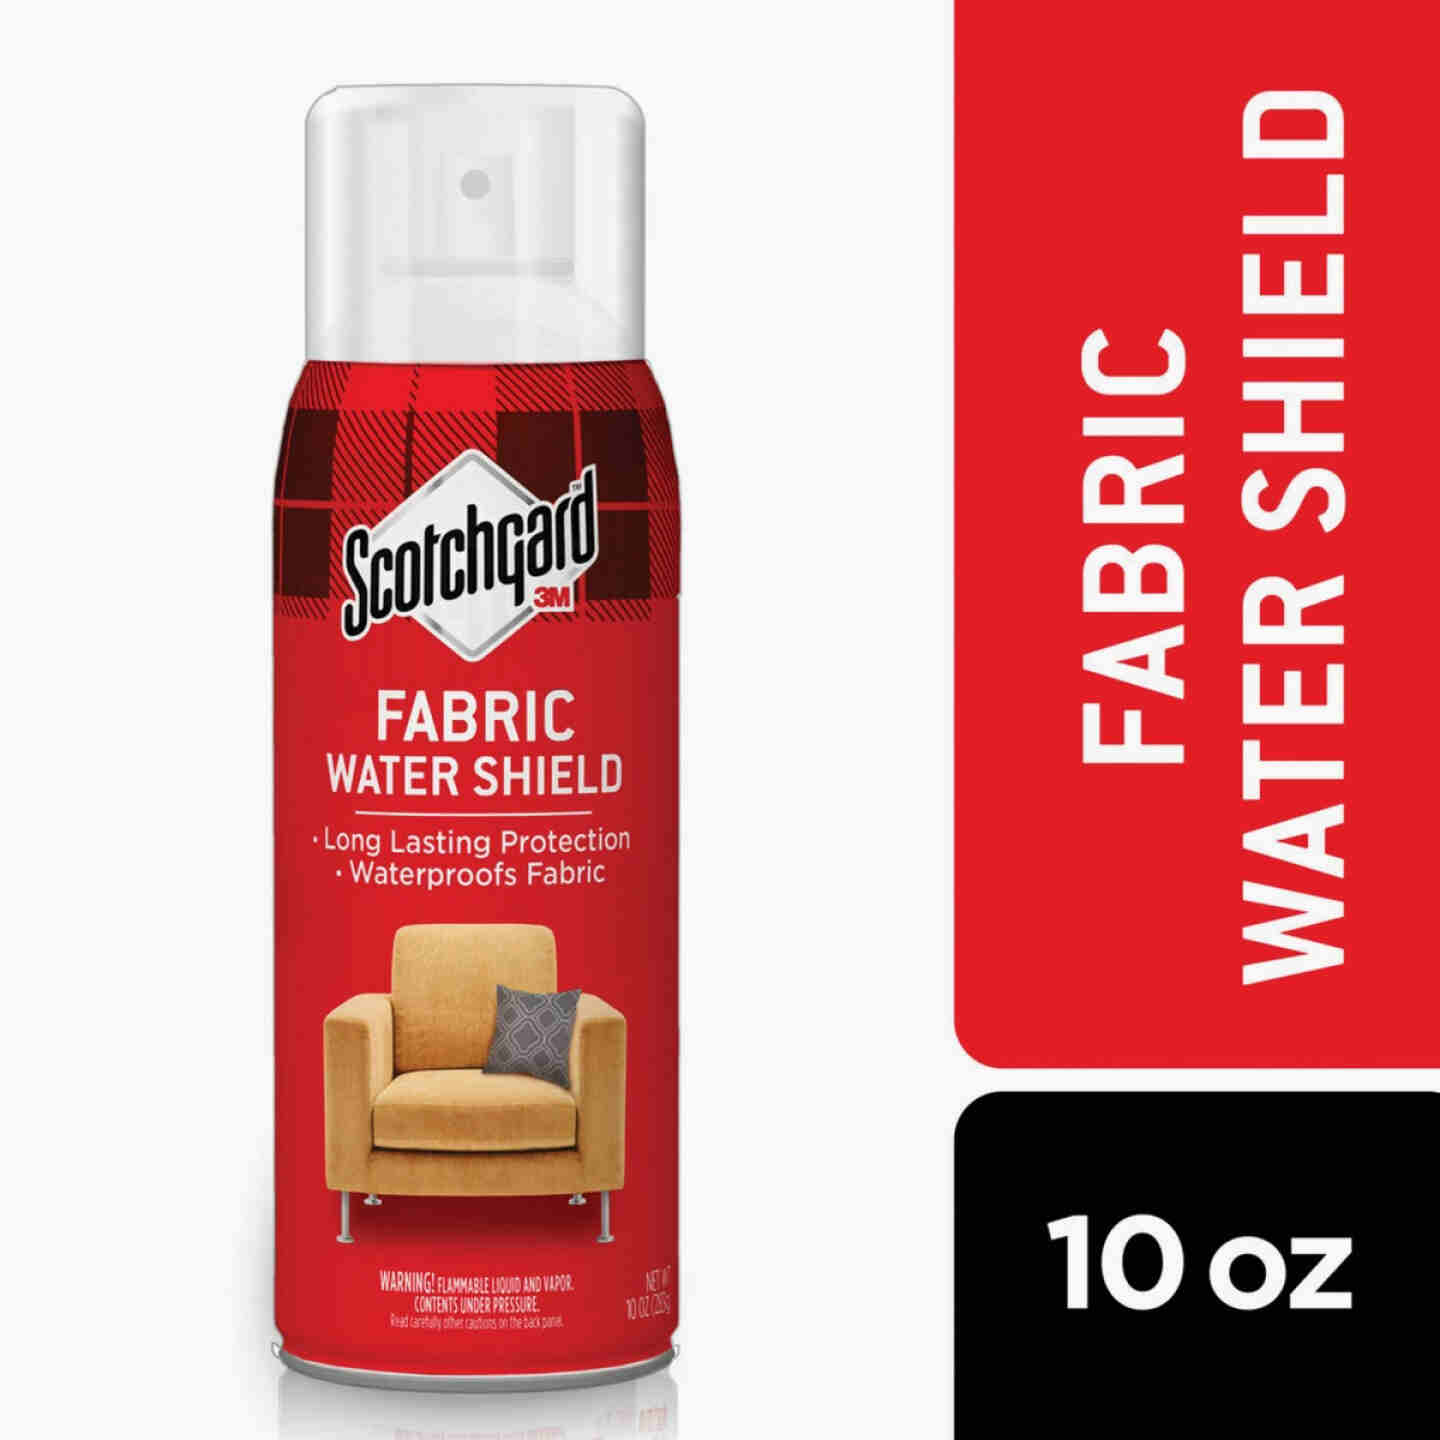 Scotchgard 10 Oz. Fabric Water Shield Image 4